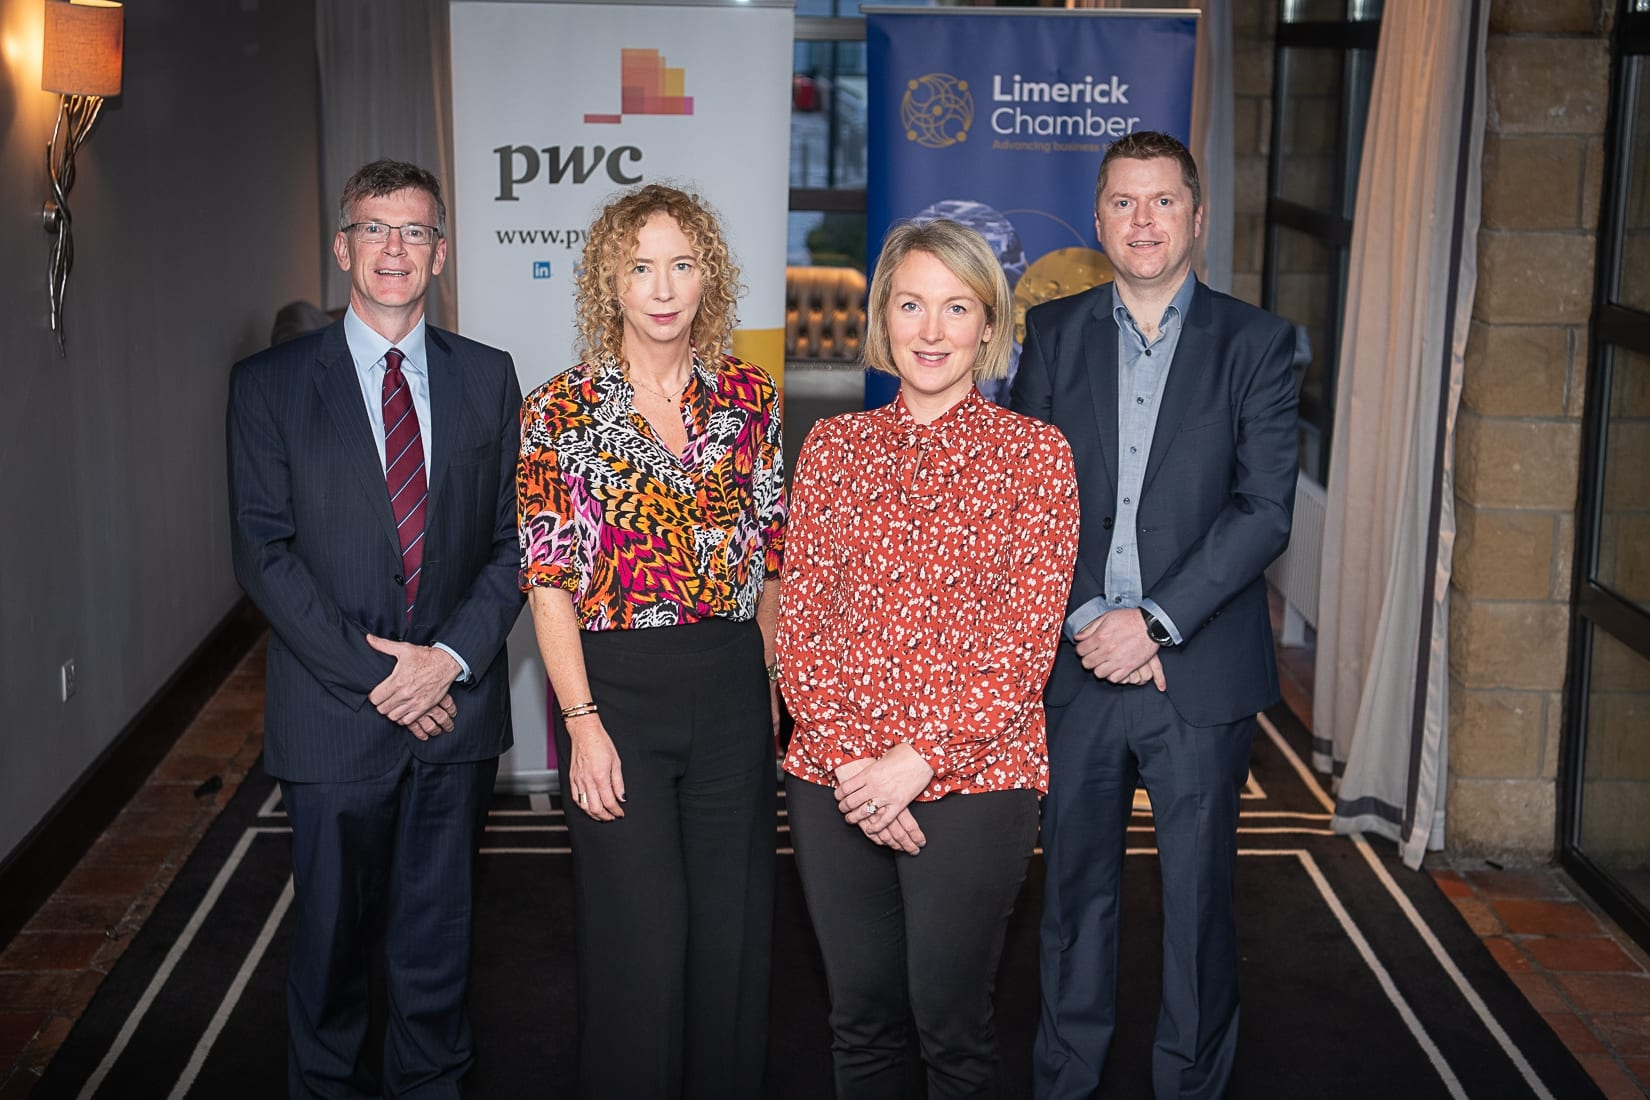 PWC Budget Breakfast in association with the Limerick Chamber which took place in the Castletroy Park Hotel on 9th October 2019, from left to right: Professor Alan Ahearne - Speaker, Mairead Connolly - PWC / Speaker, Emer Hodges - PWC / SPEAKER, Eoin Ryan - Limerick Chamber President.  Photo by Morning Star Photography